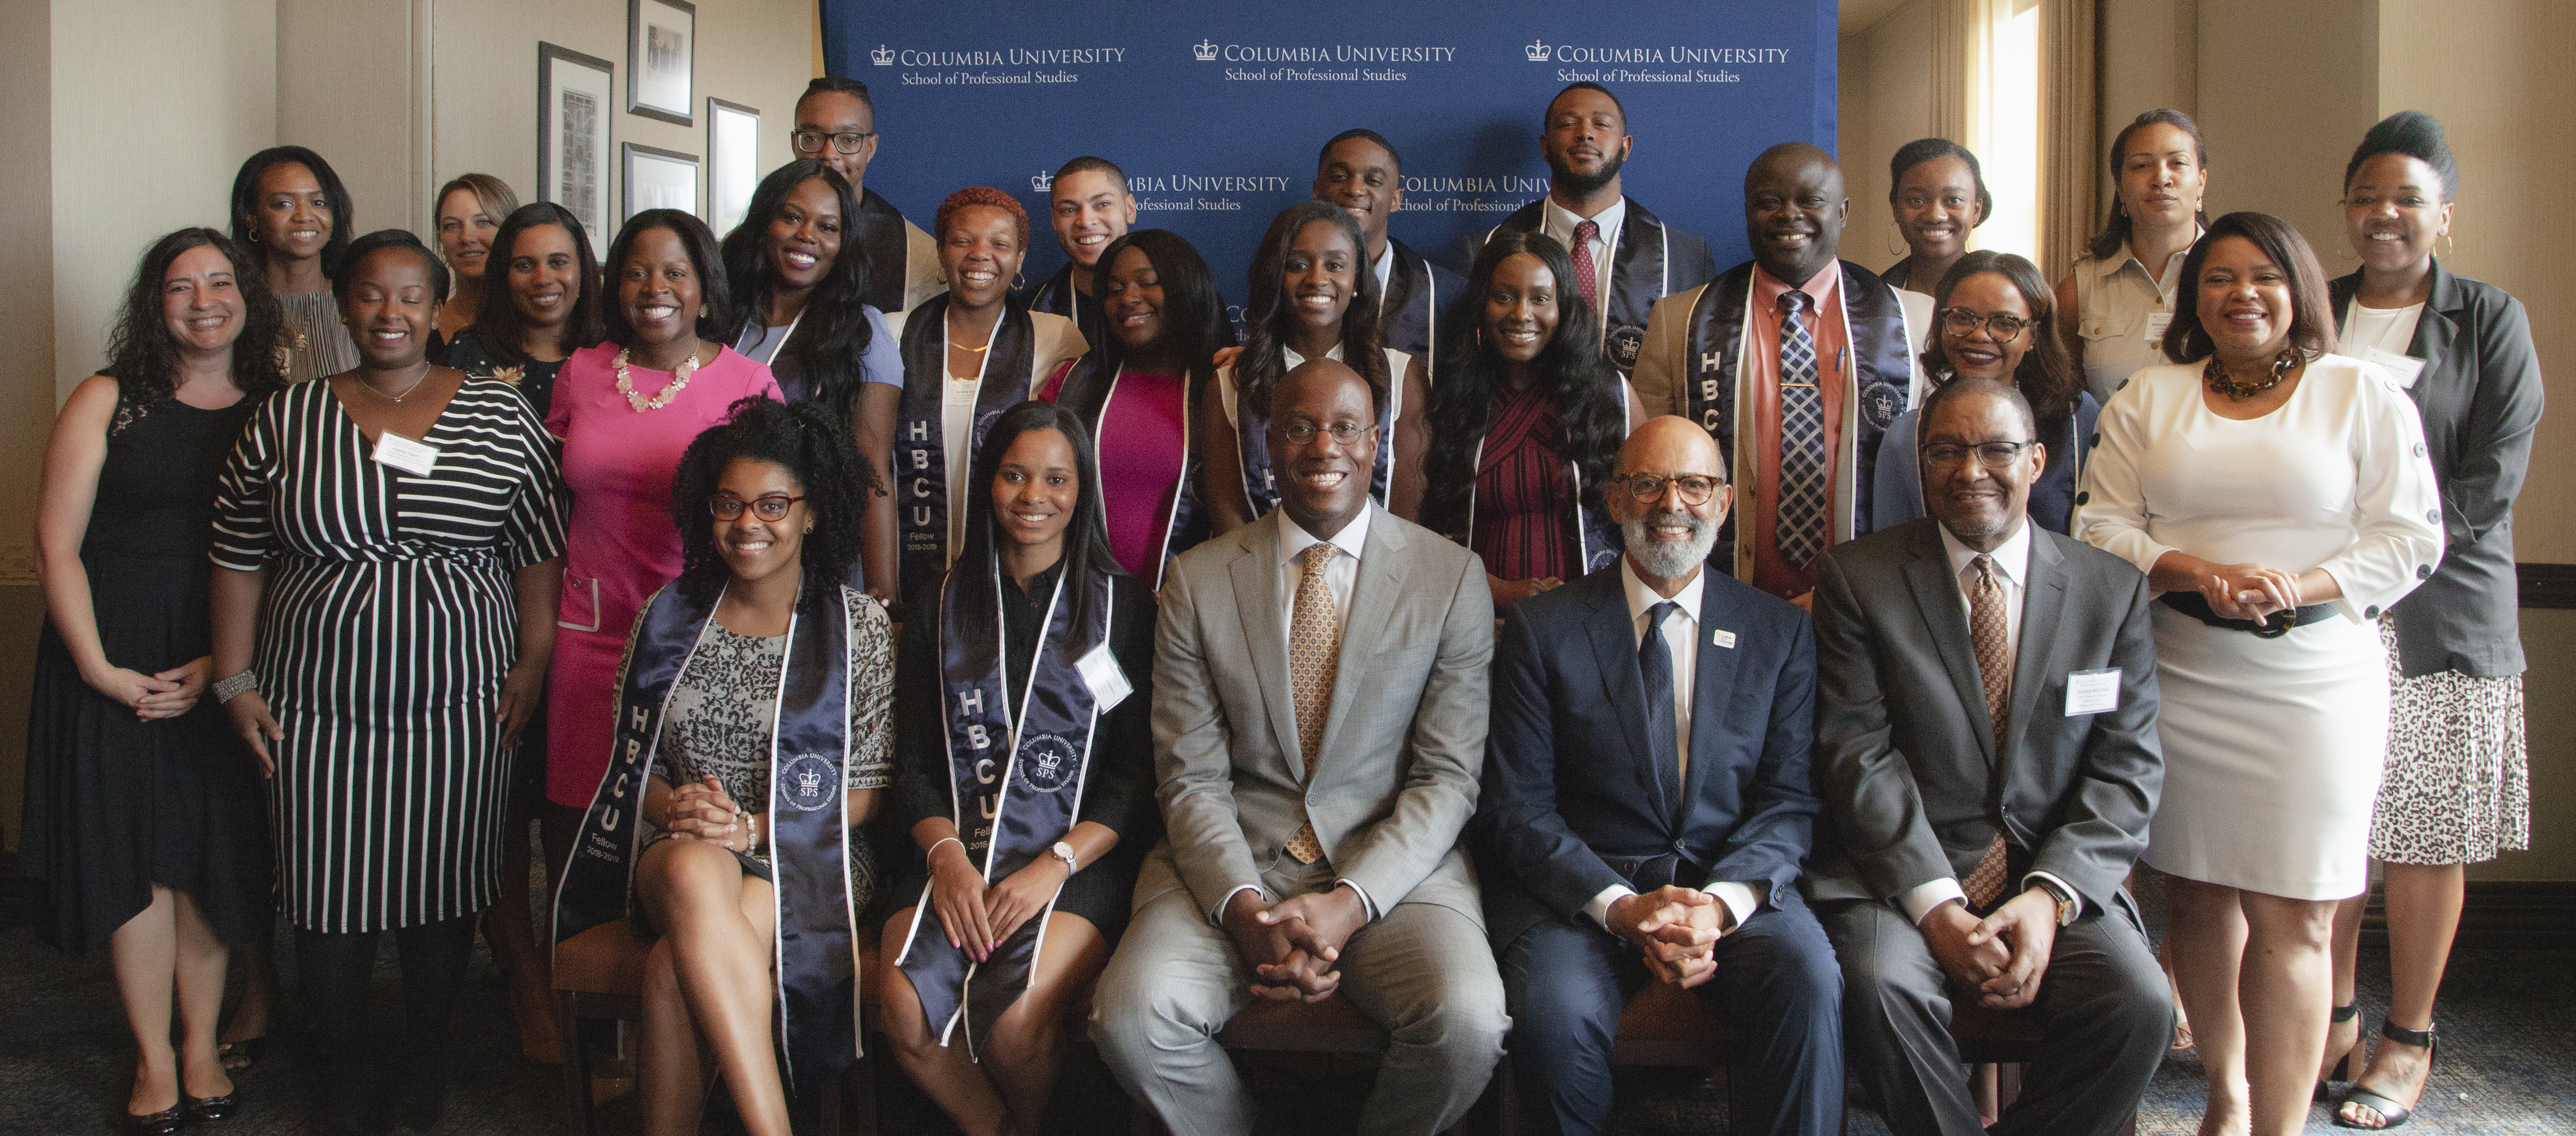 Dr. Jason Wingard, Dean, School of Professional Studies, Dr. Michael Lomax, President, United Negro College Fund, SPS officers, and 2019 HBCU Fellows celebrated the end of initiative's second year on May 20, 2019.